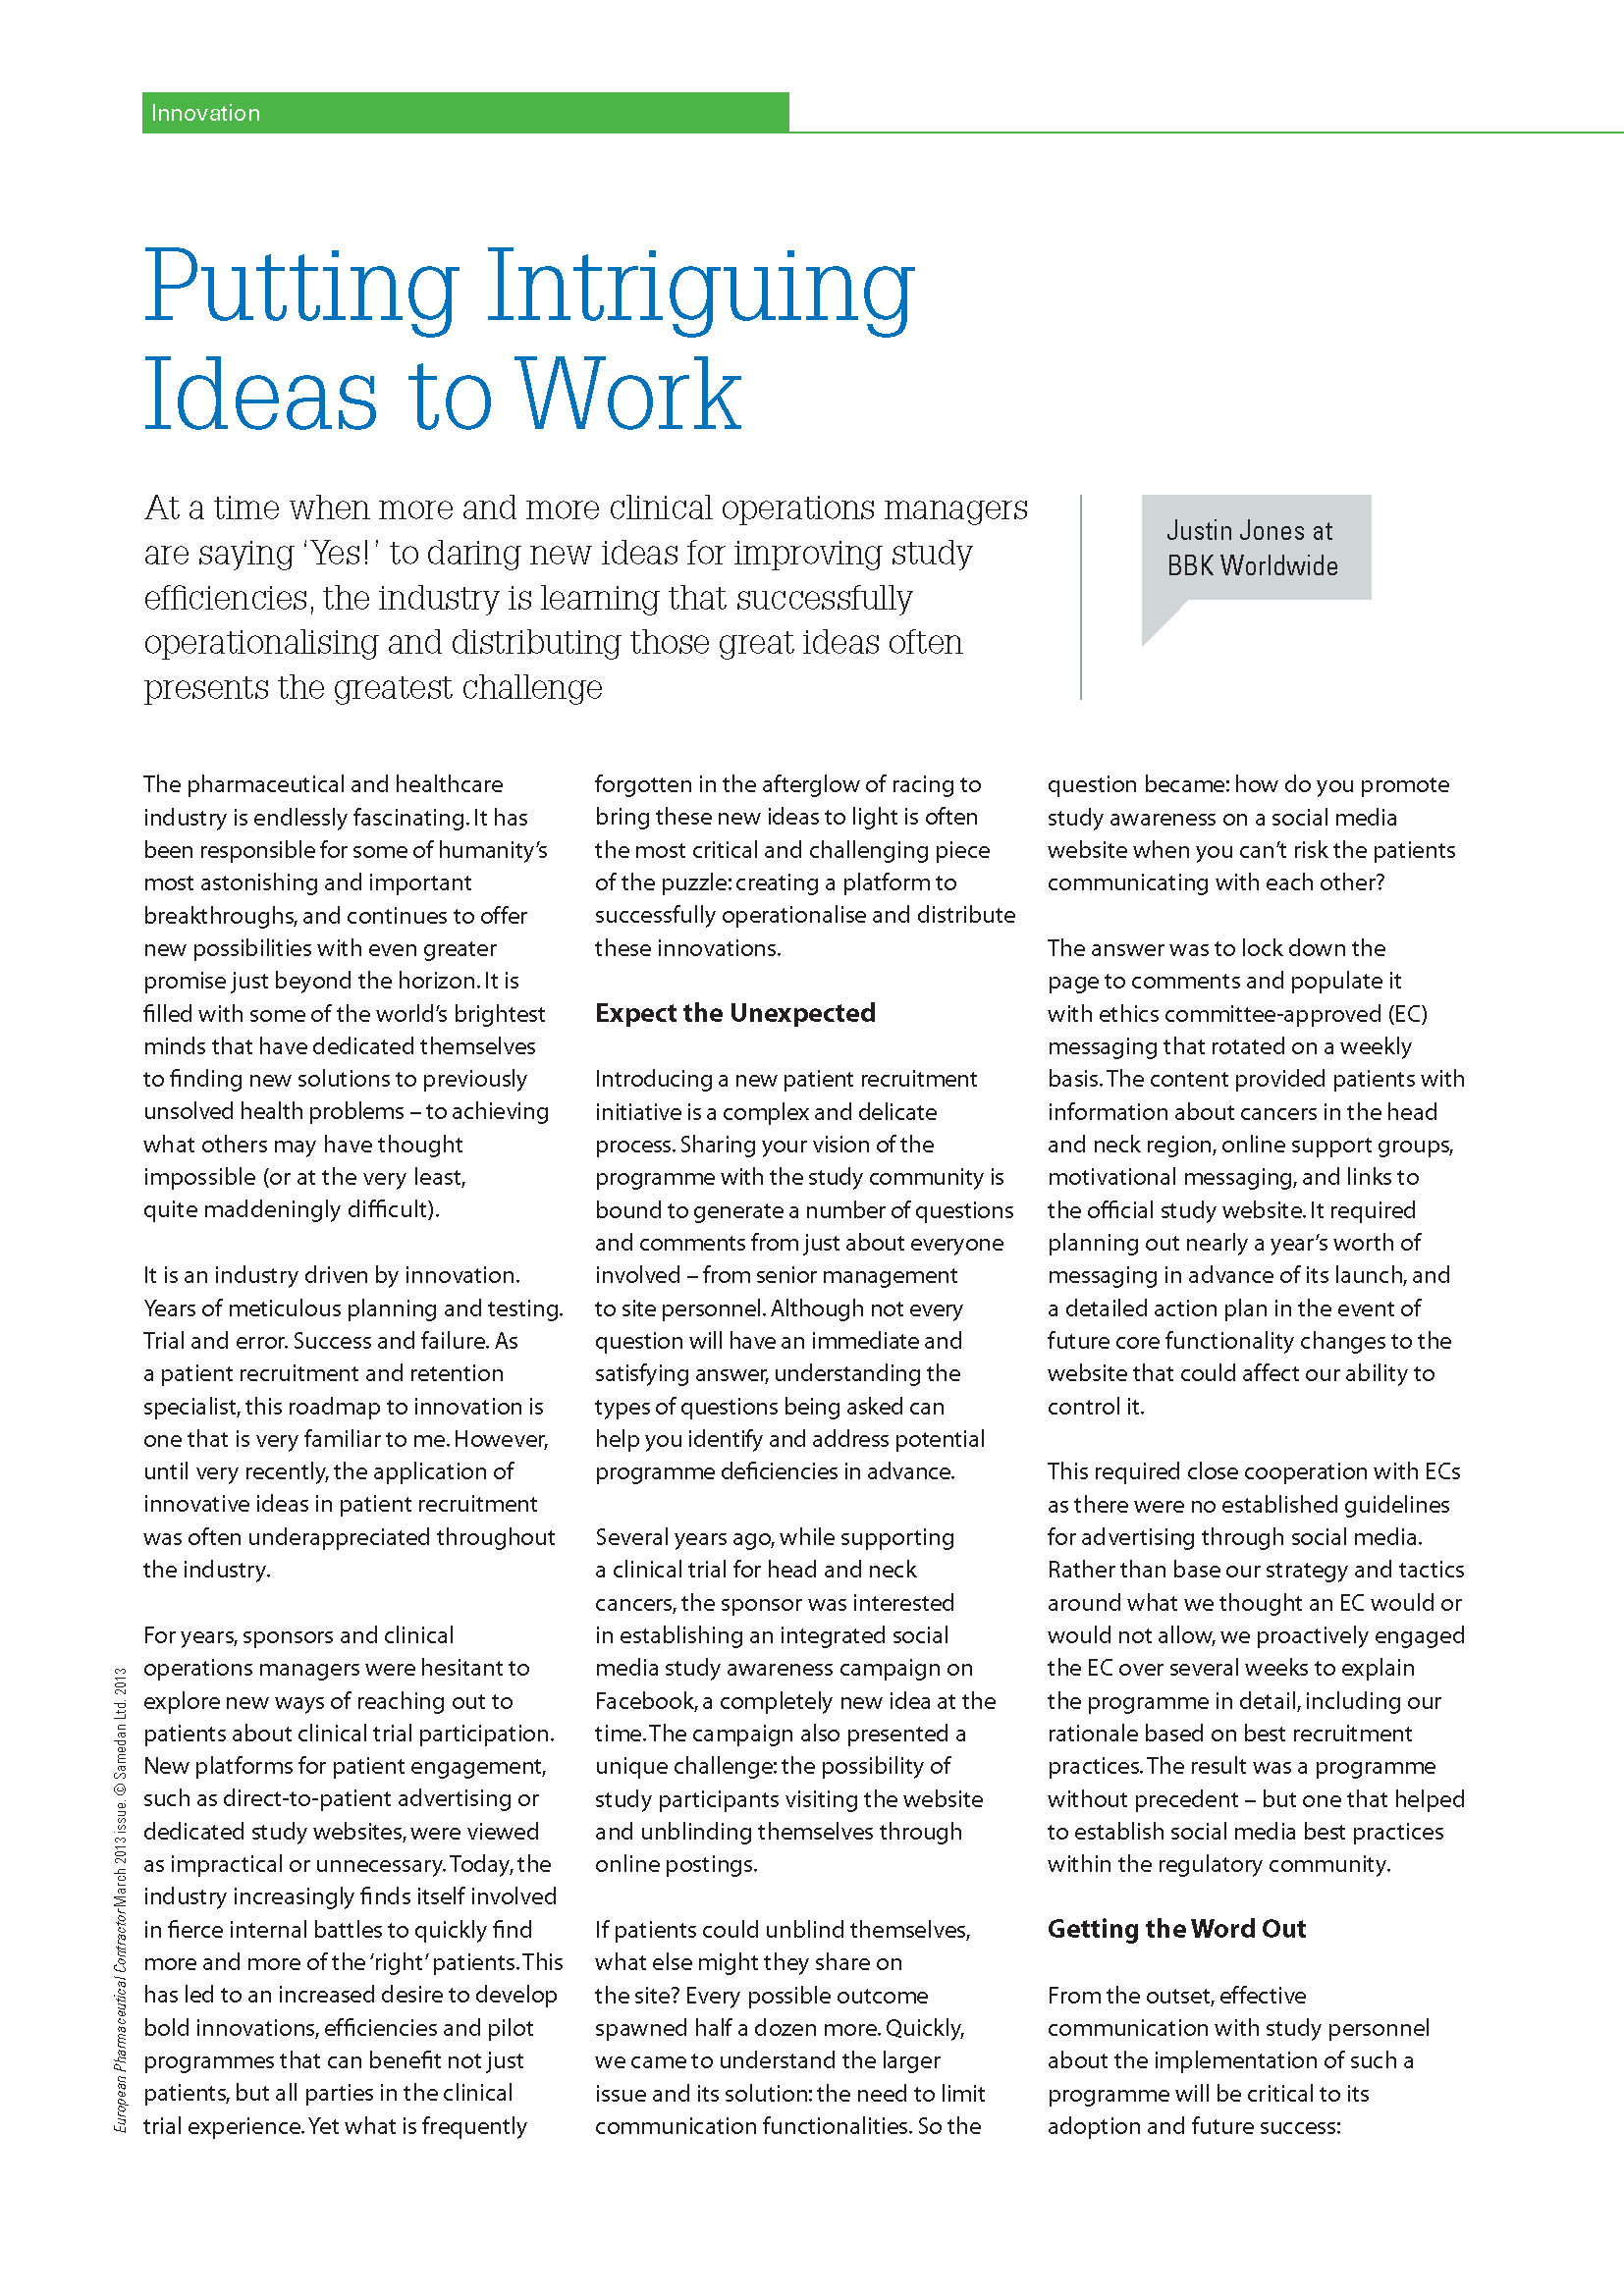 White Papers / Articles - Putting Intriguing Ideas to Work